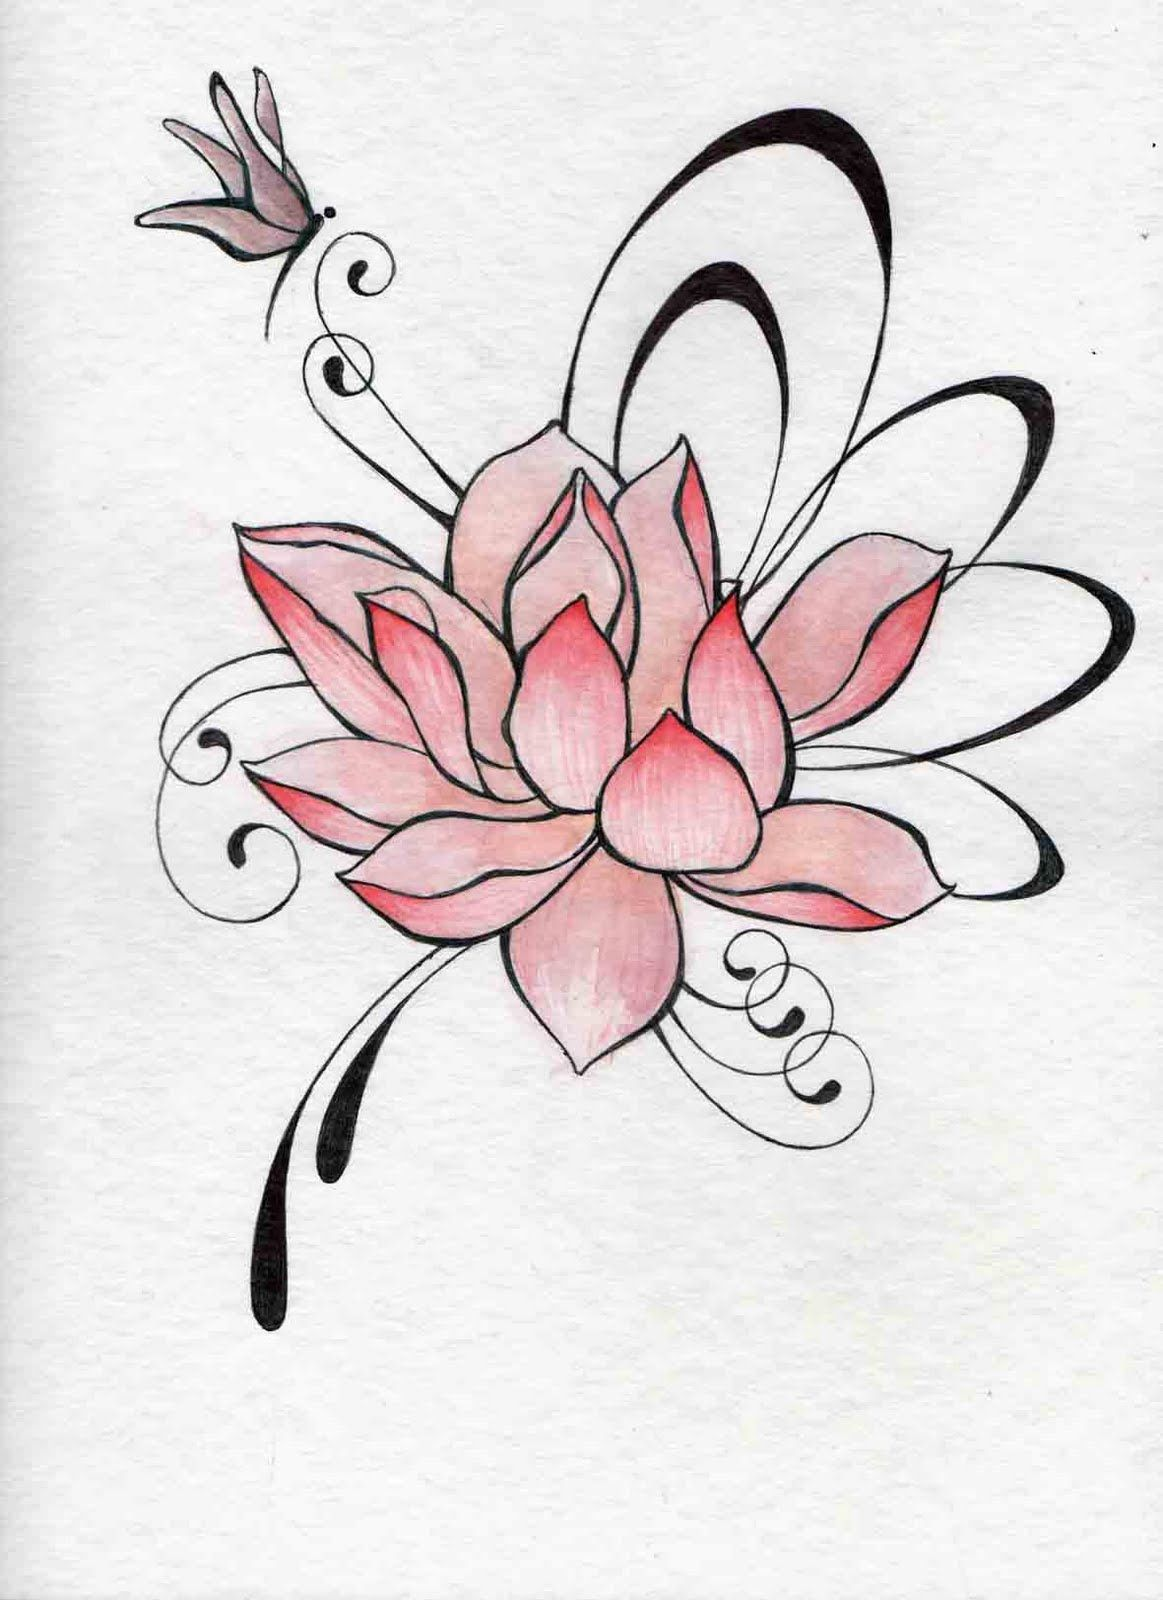 Serie De Flores Dessin A La Plumes Pinterest Tatoo Tattoo And